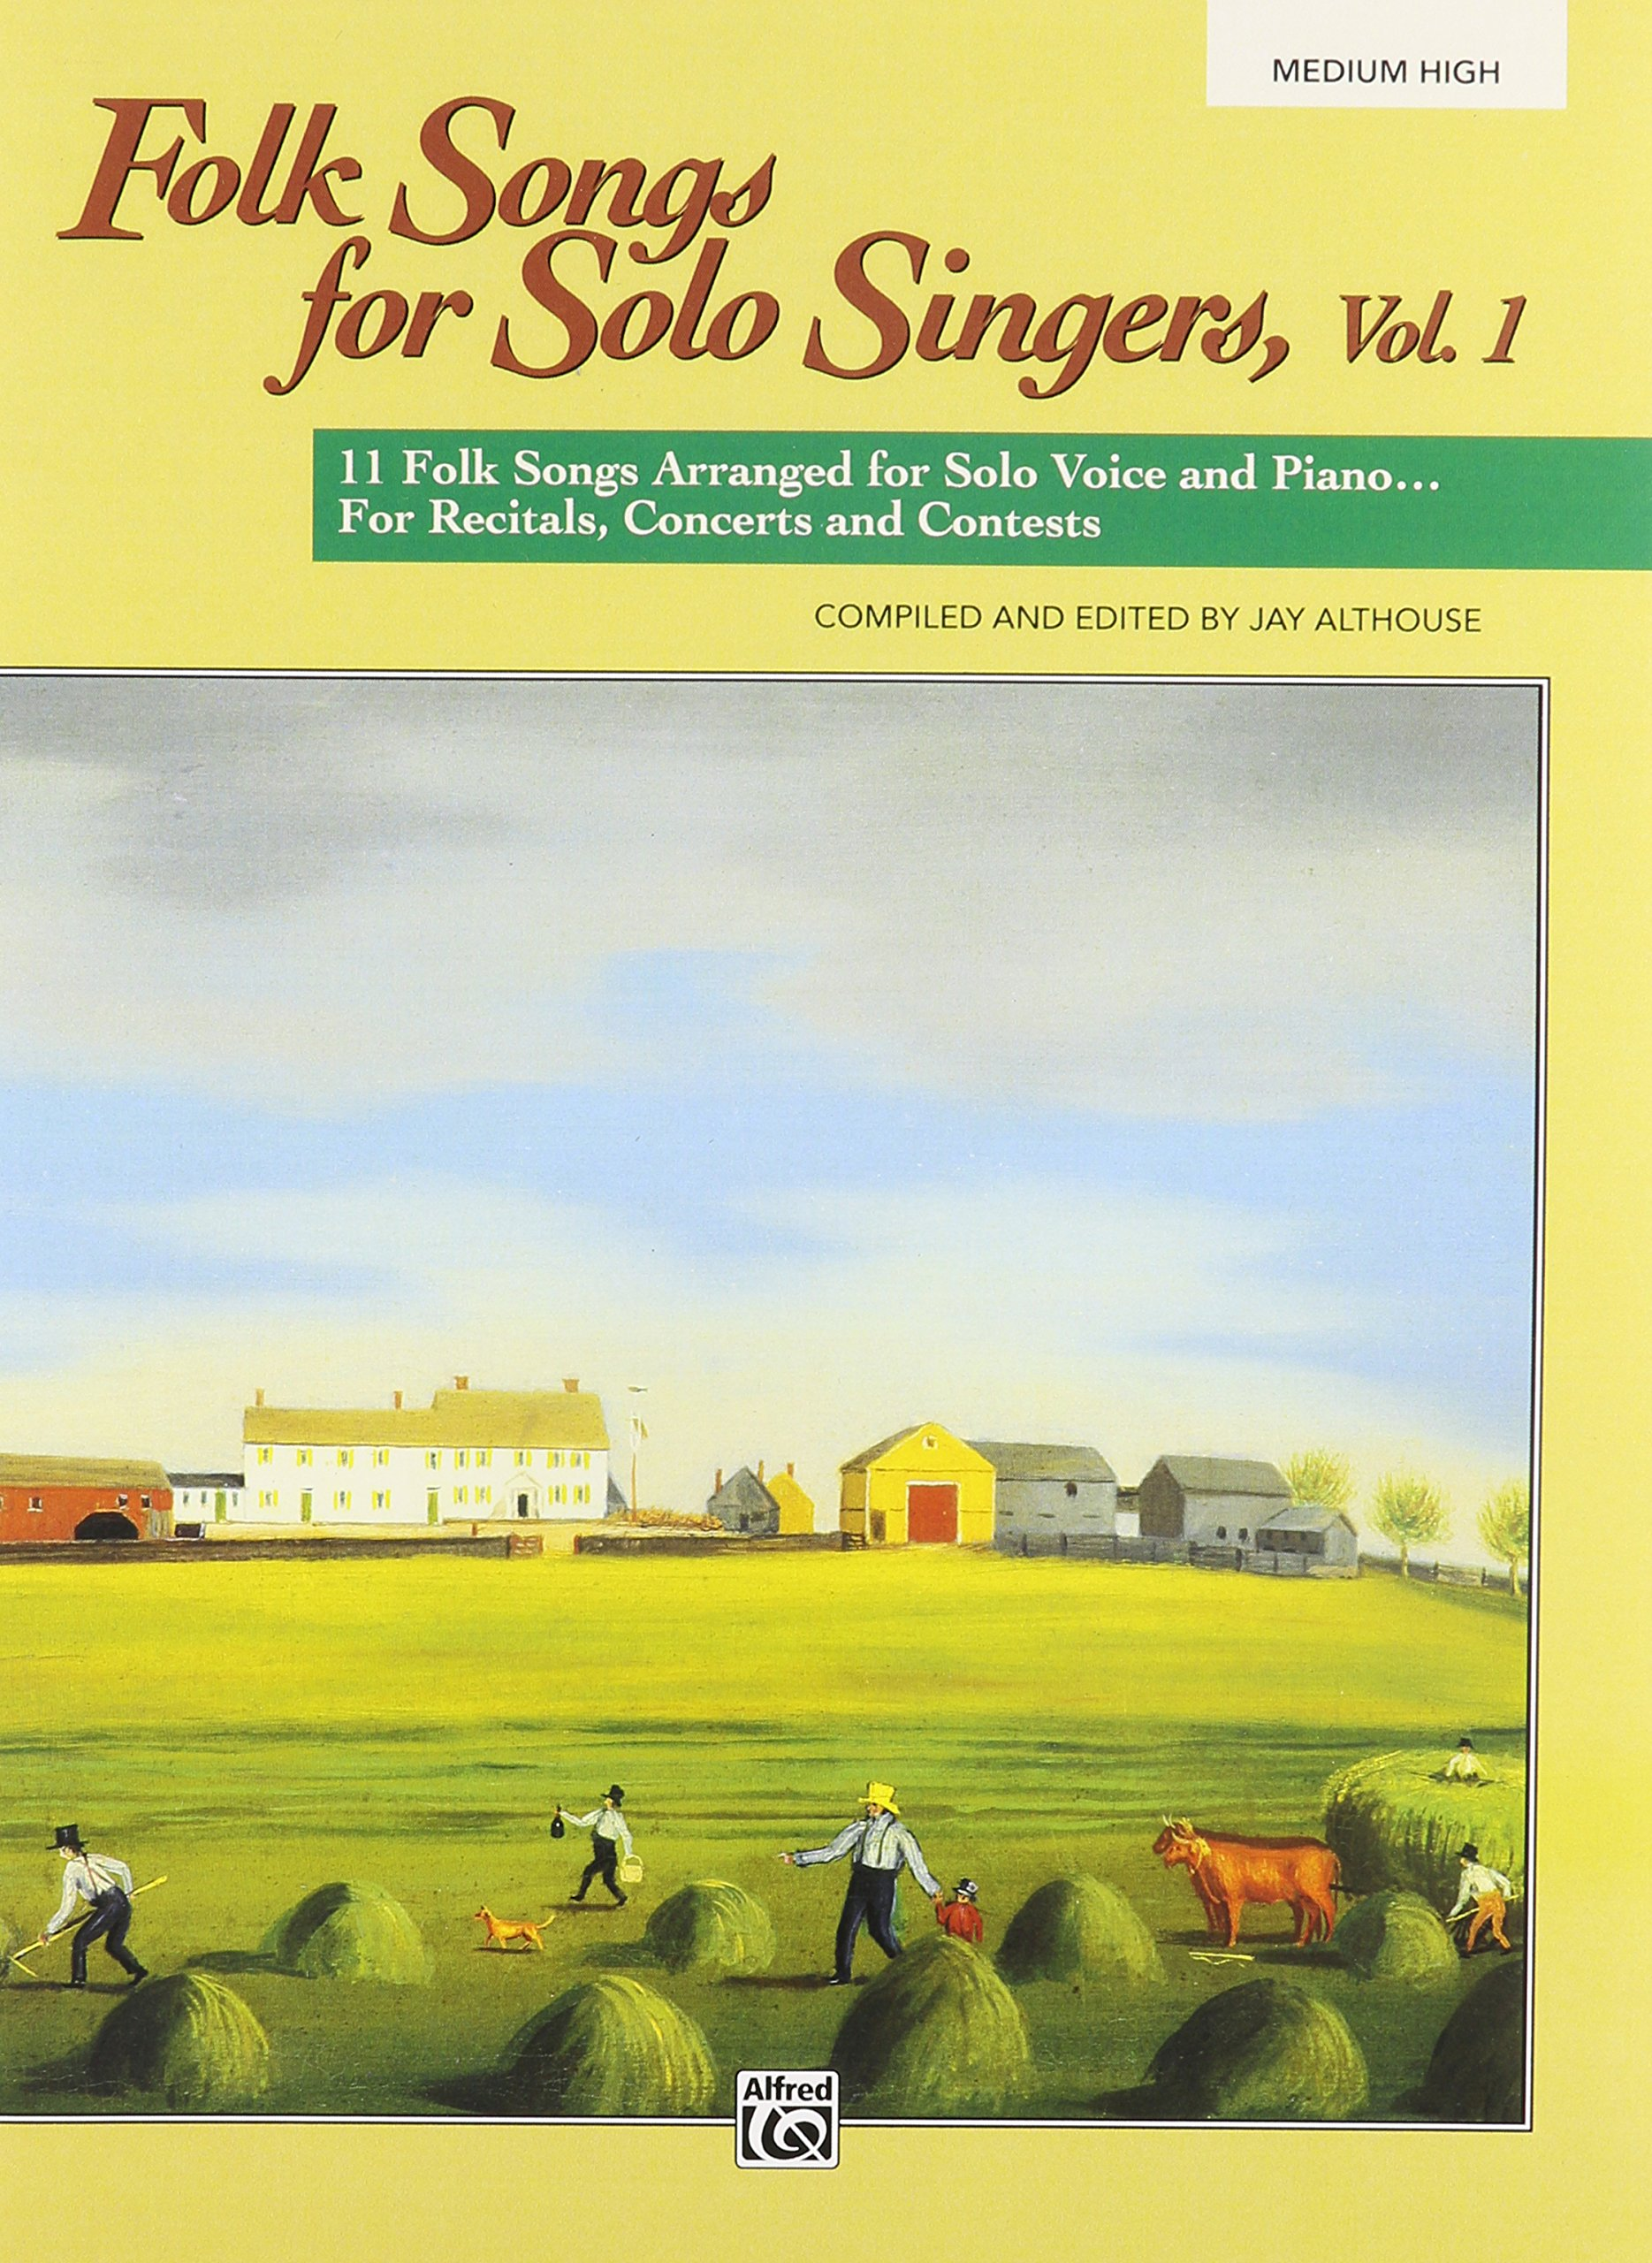 Folk Songs for Solo Singers, Vol 1: 11 Folk Songs Arranged for Solo Voice and Piano . . . For Recitals, Concerts, and Contests (Medium High Voice)